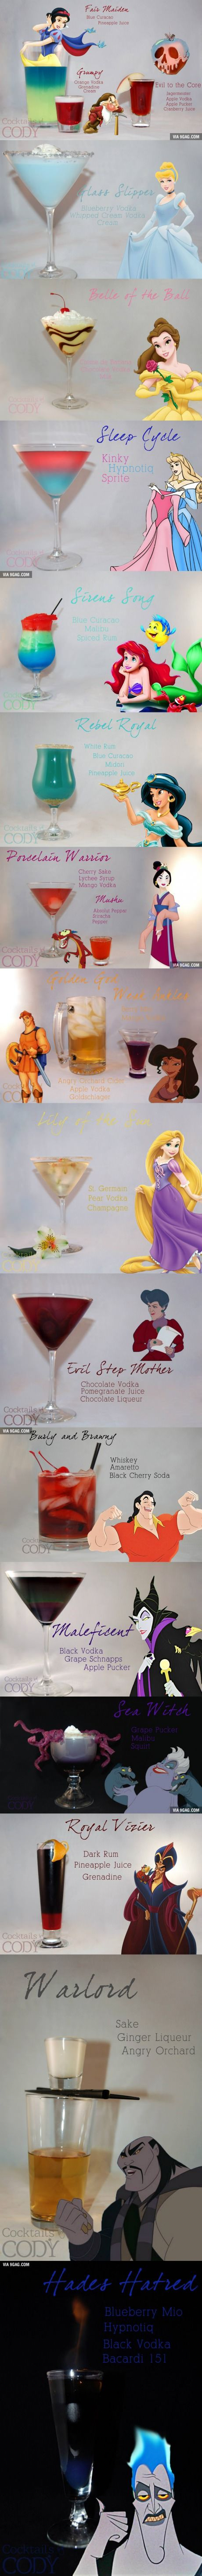 the cocktail party characters